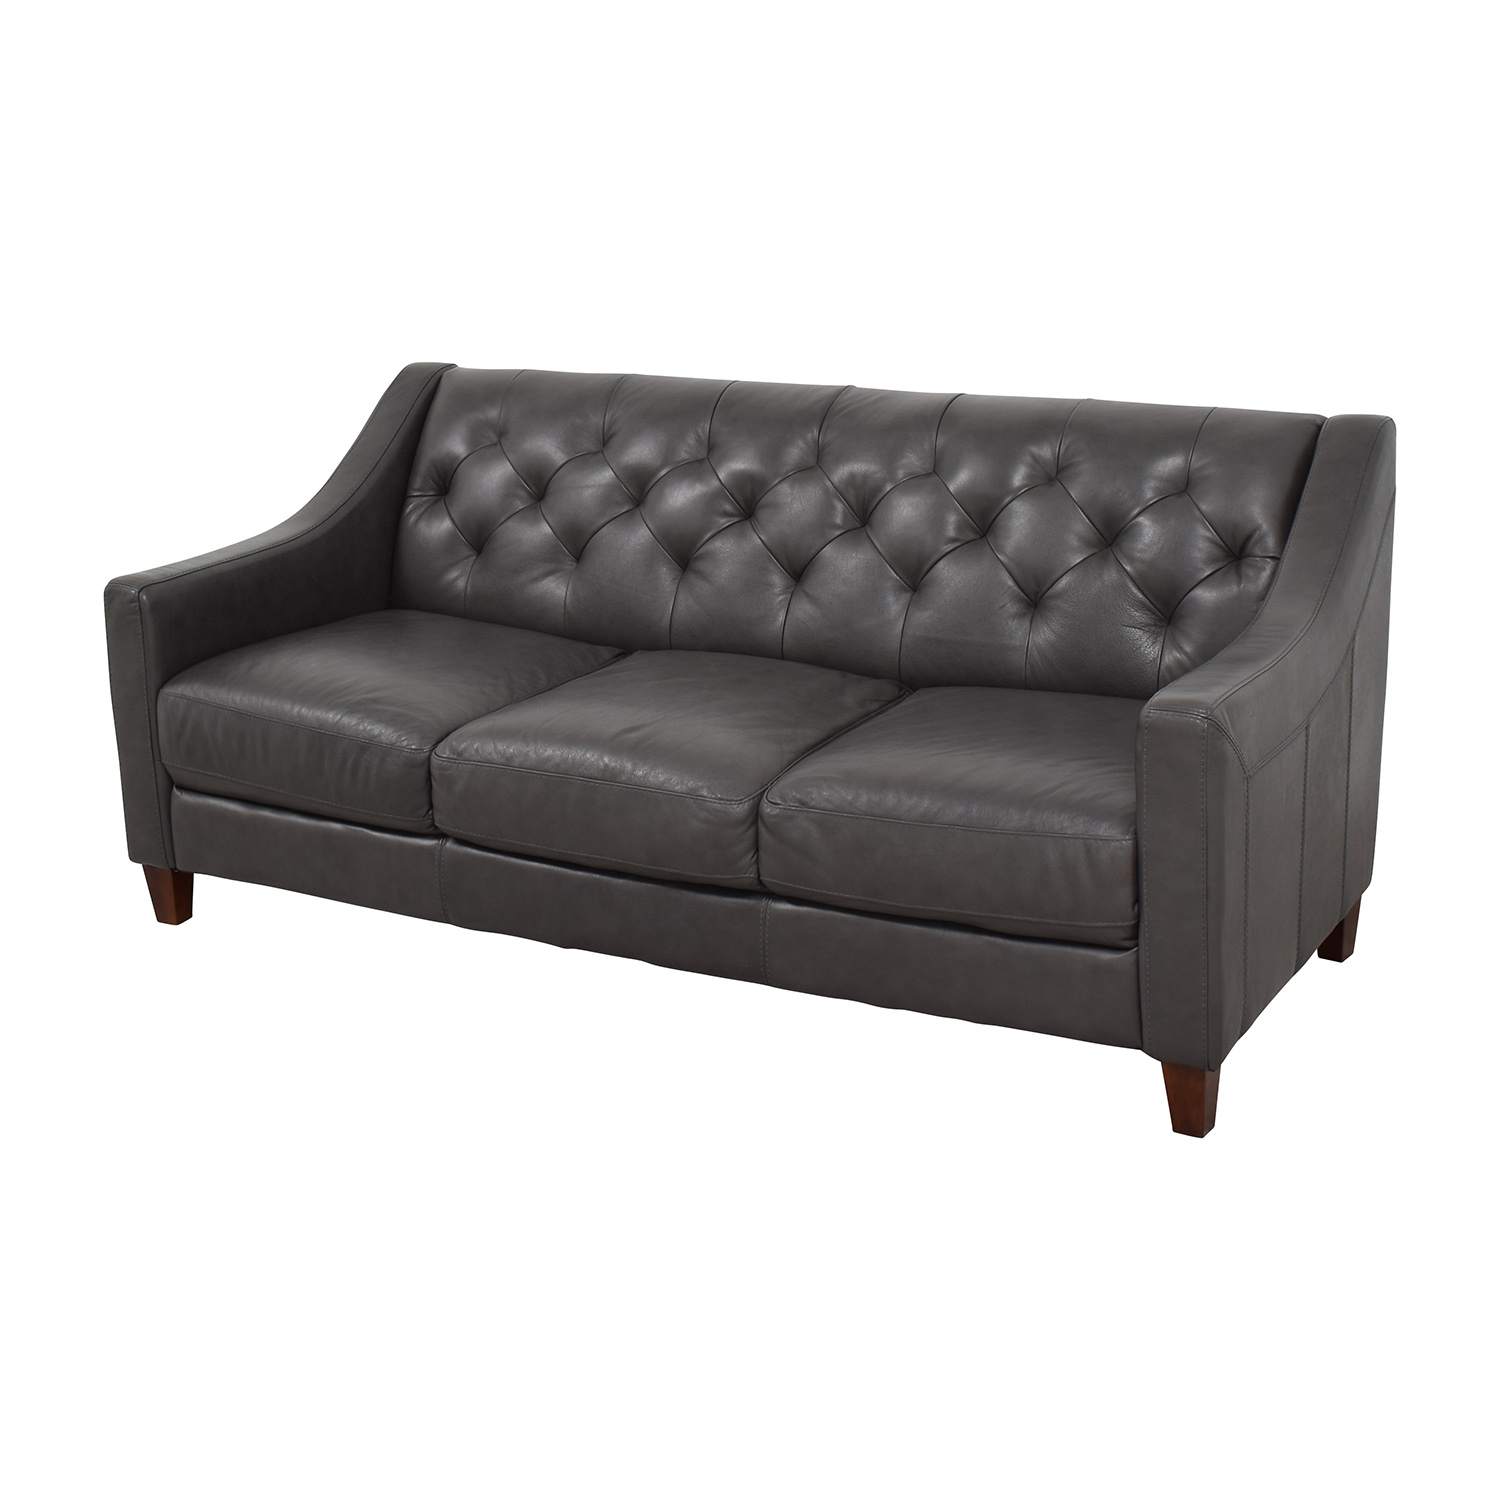 Tufted leather sofa nyc for Tufted leather sleeper sofa